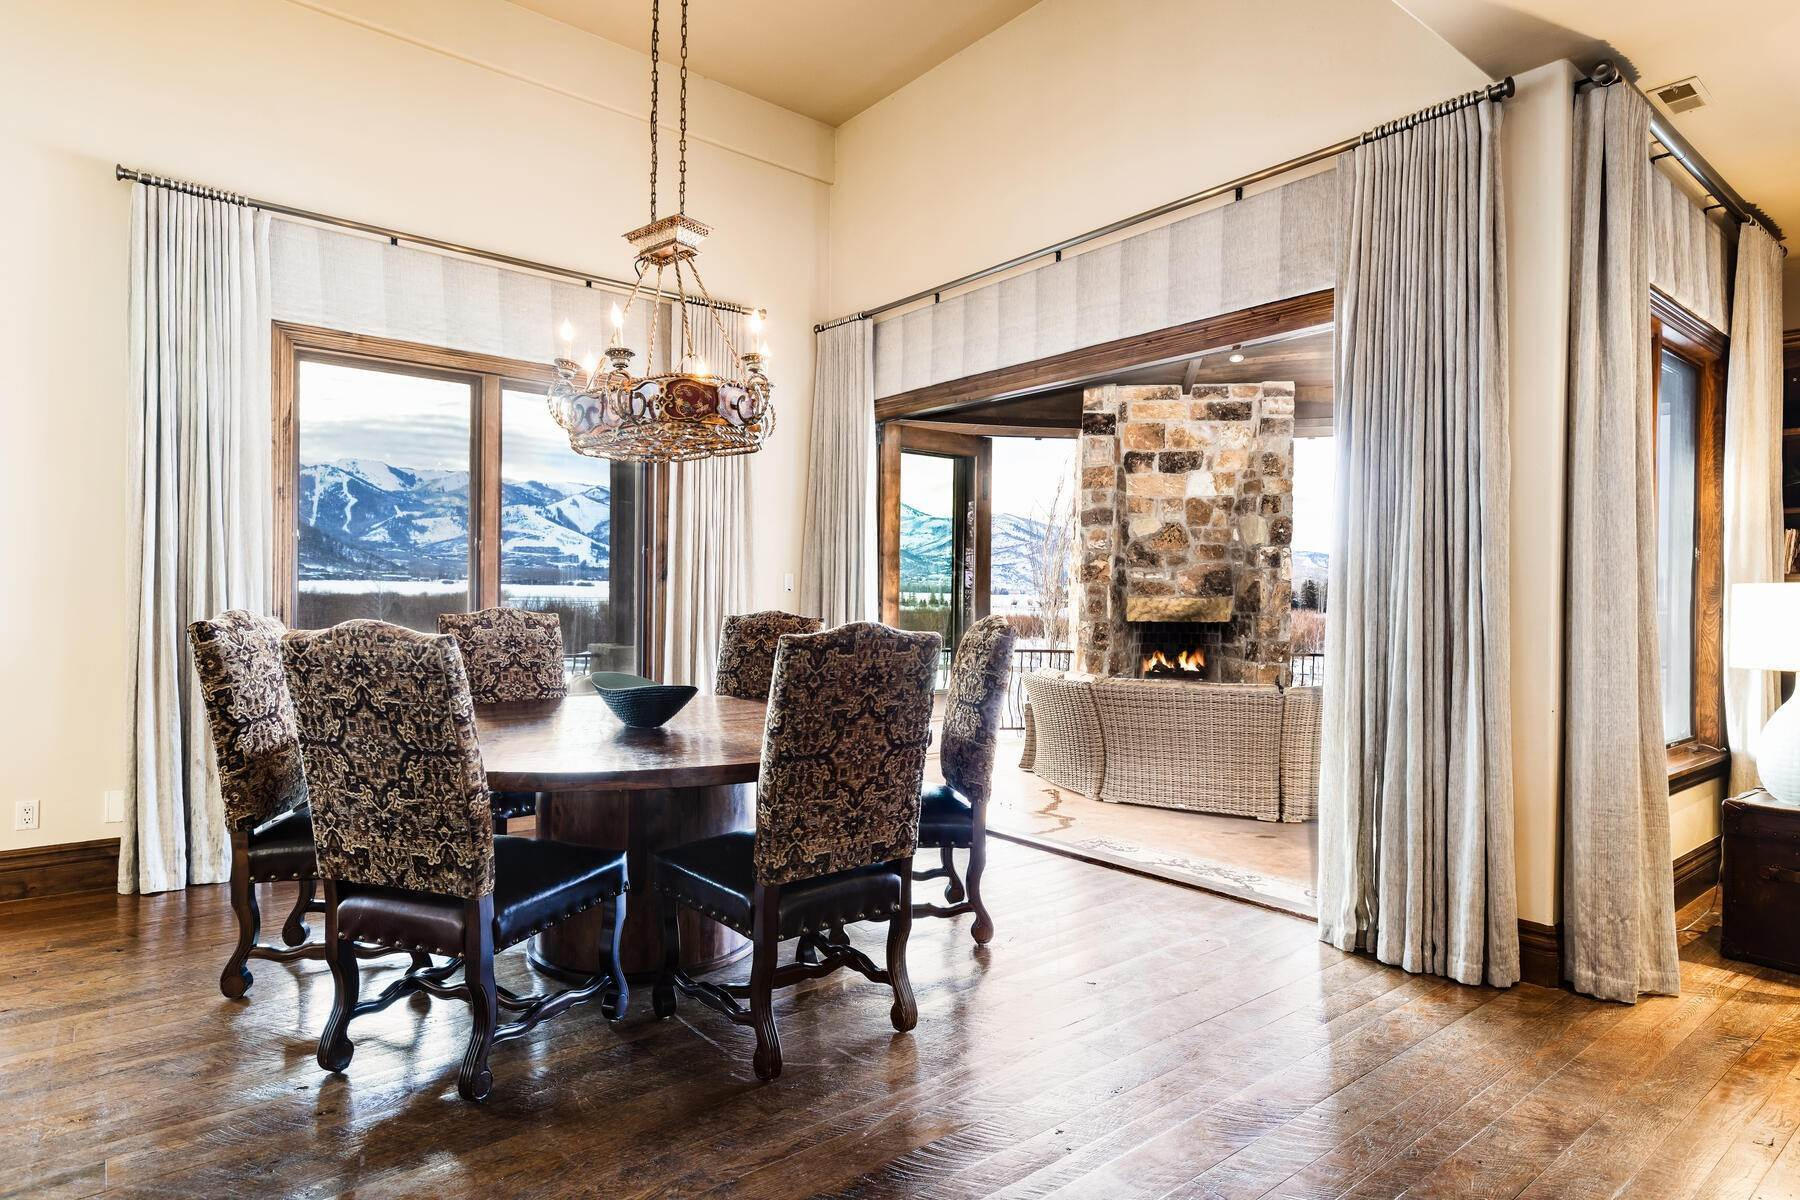 8. Single Family Homes for Sale at Rare Ranch Creek Estates Home Boasts over 3 Acres with Unparalleled Views 4400 N Ranch Creek Ln Park City, Utah 84098 United States